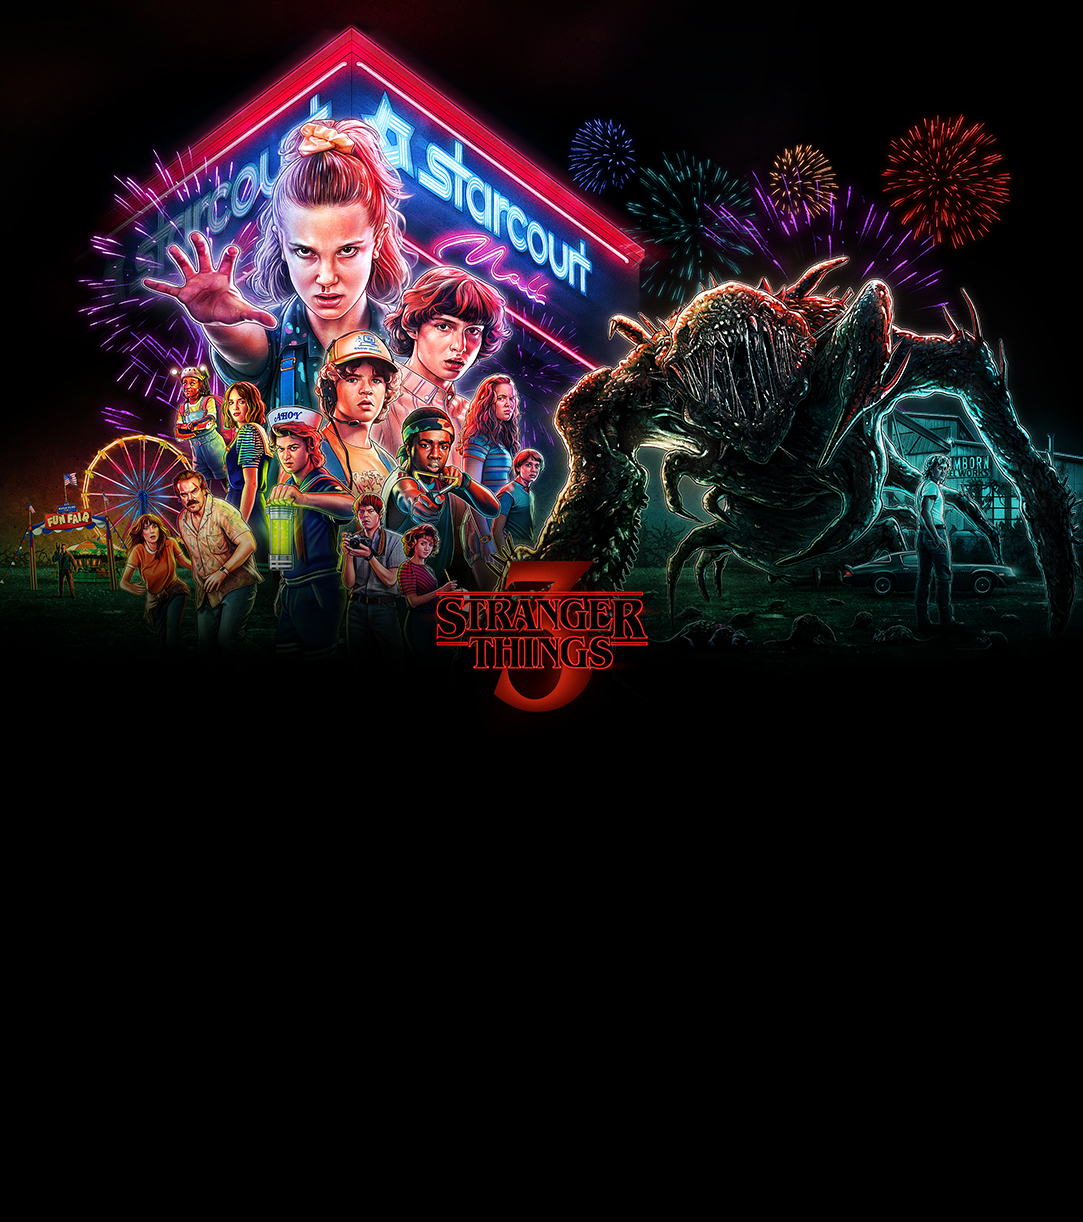 The key visual for season 3 of Stranger Things. It shows all the main characters in front of the Starcourt Mall, and features a carnival in the background